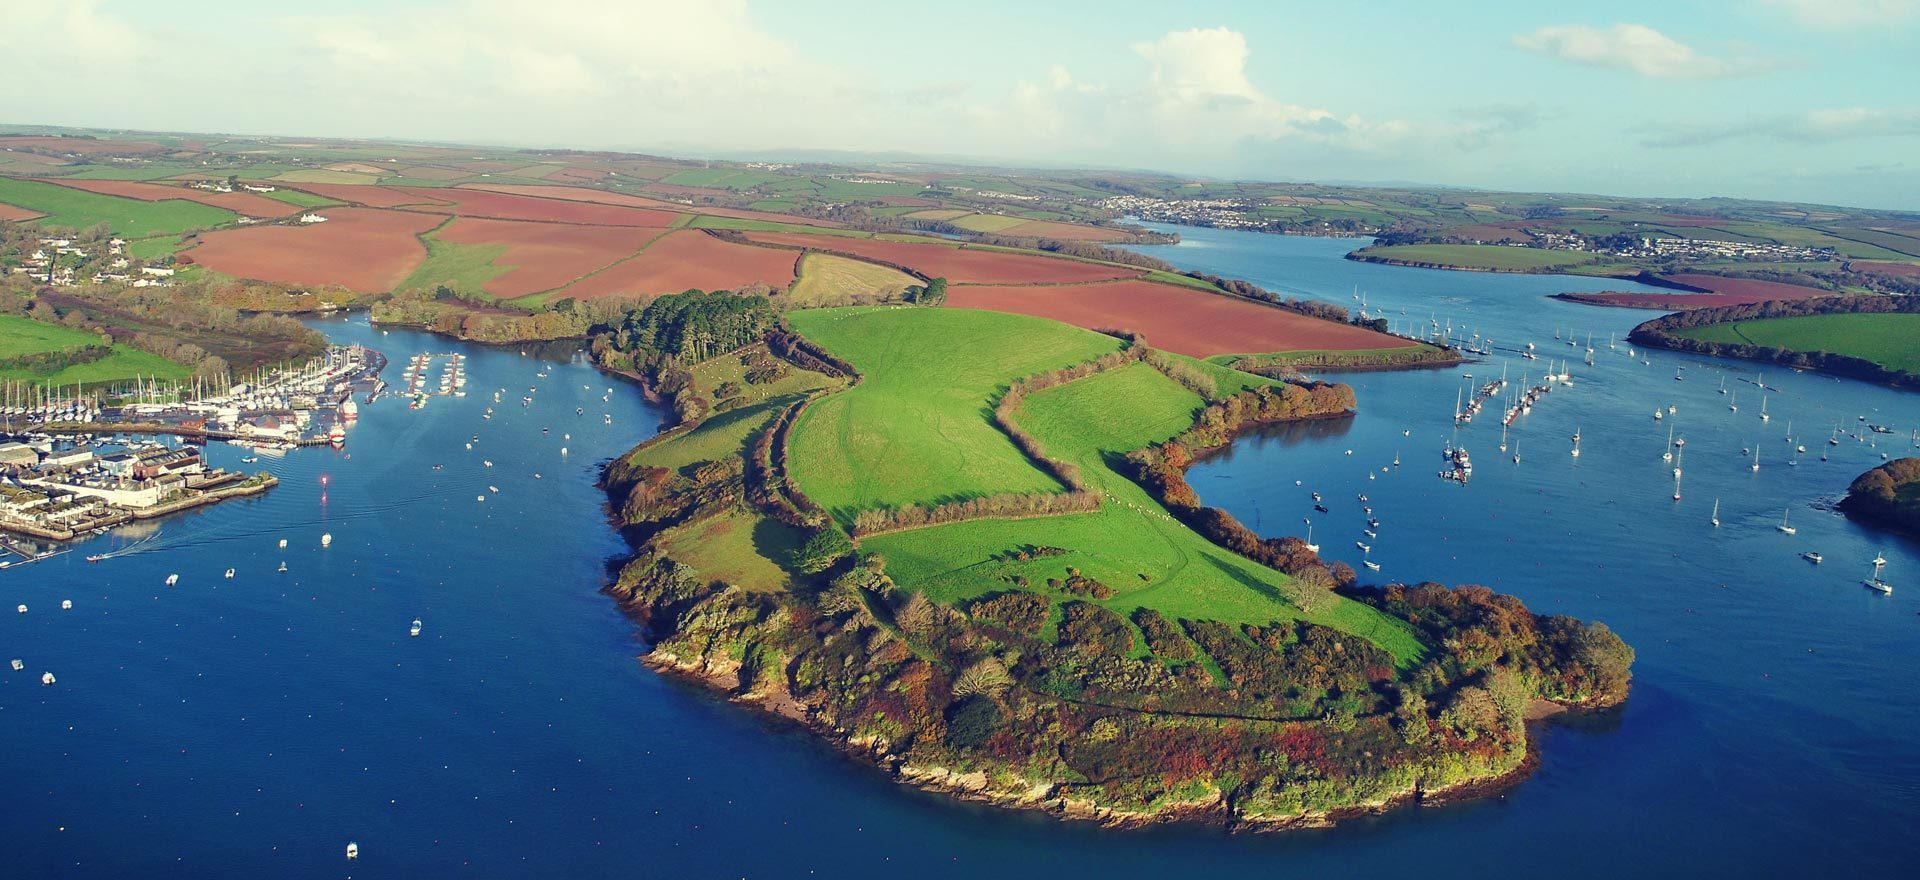 Drone Devon, Aerial Photography Devon, Drone Photography Devon